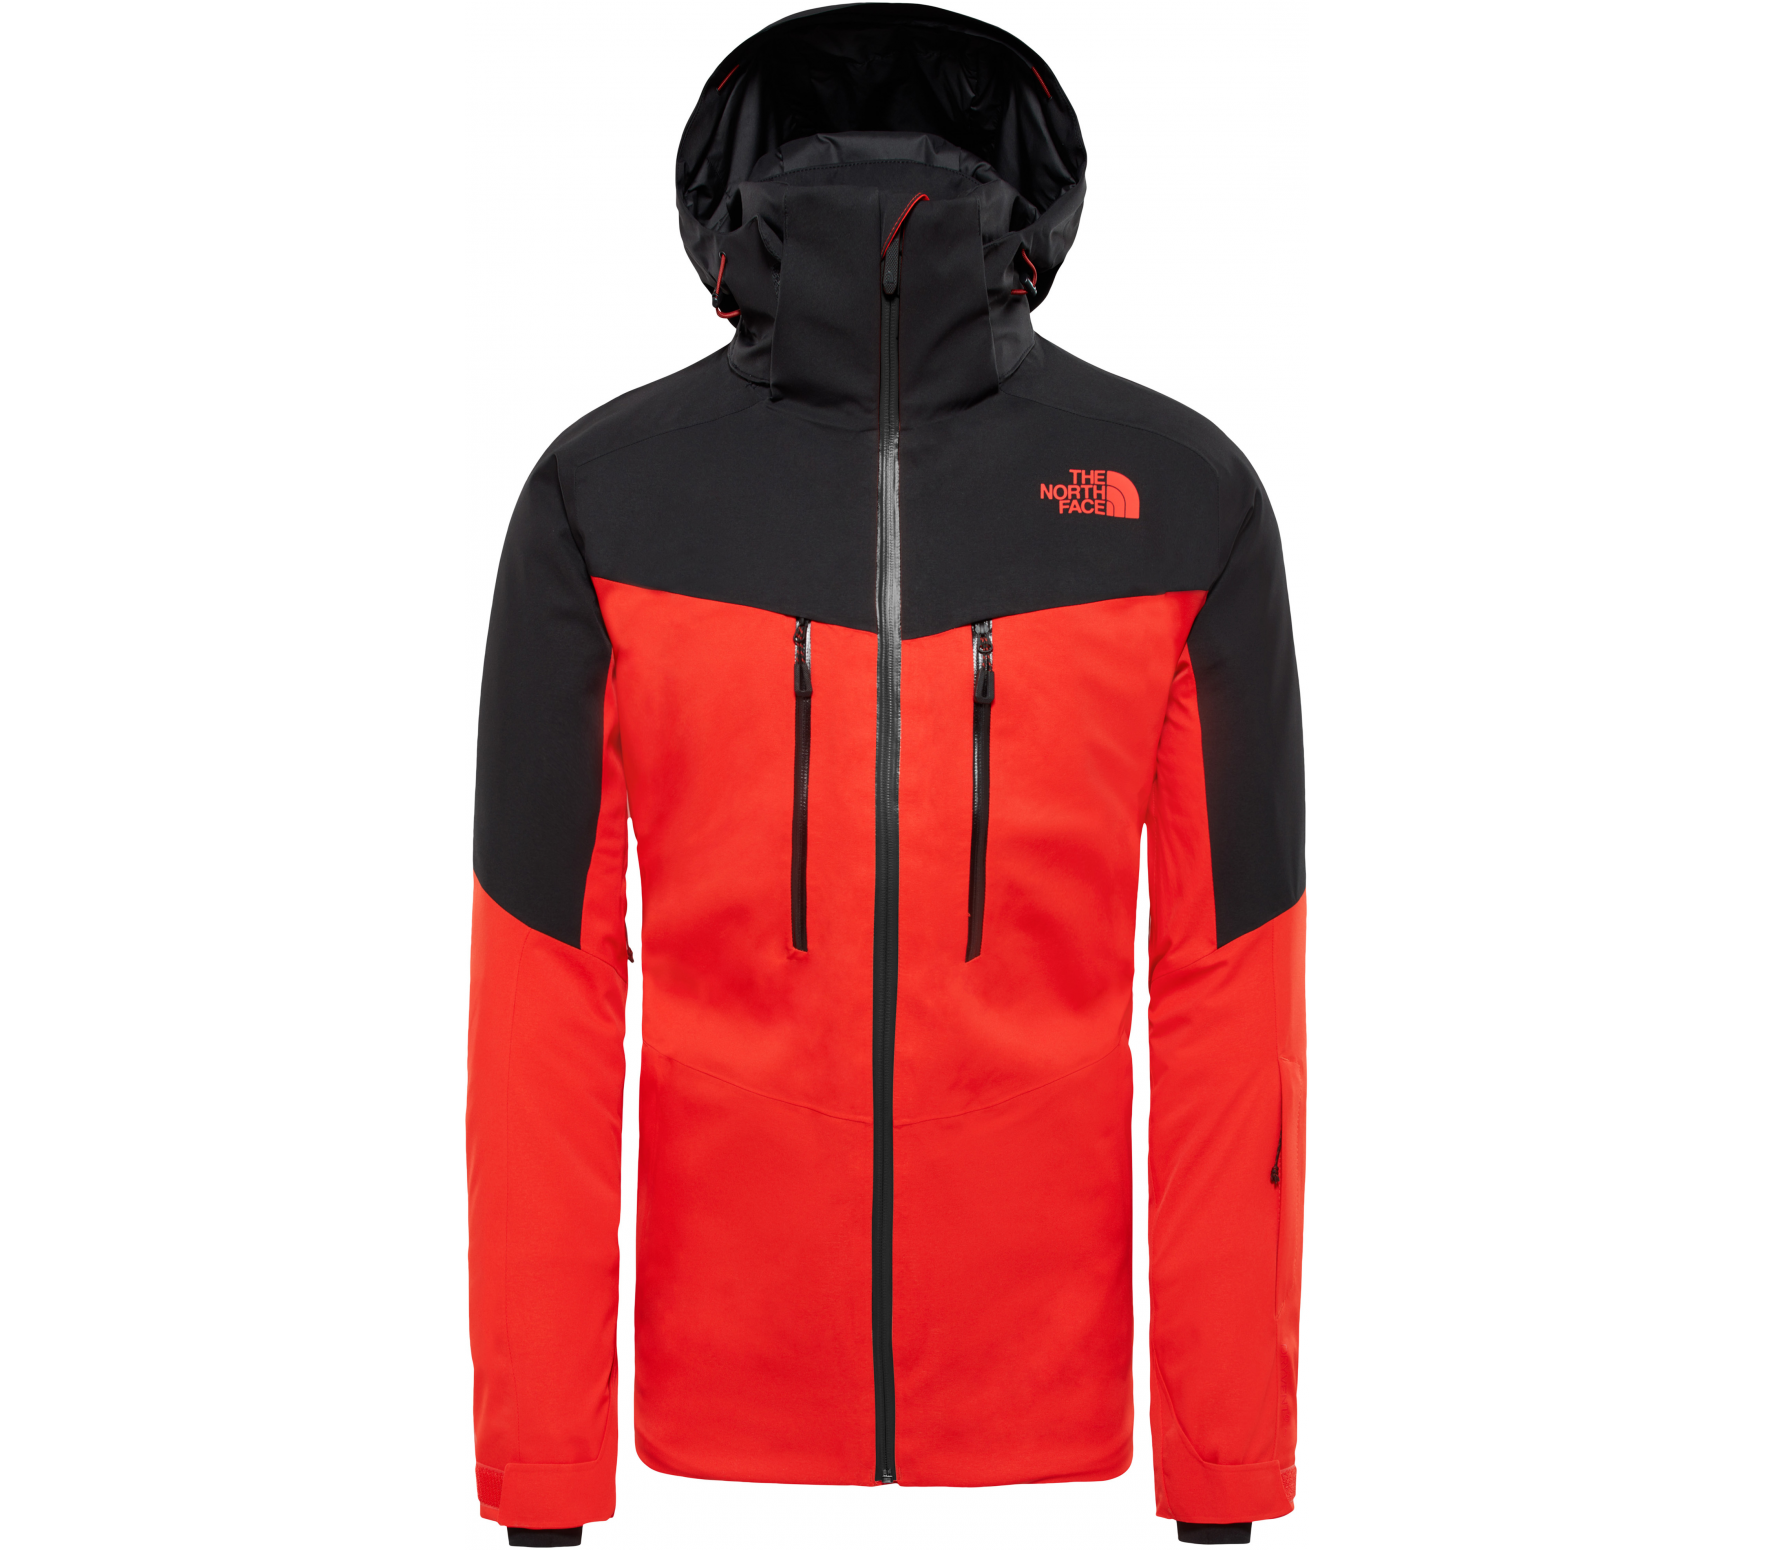 The North Face Chakal Men S Skis Jacket Red Black Buy It At